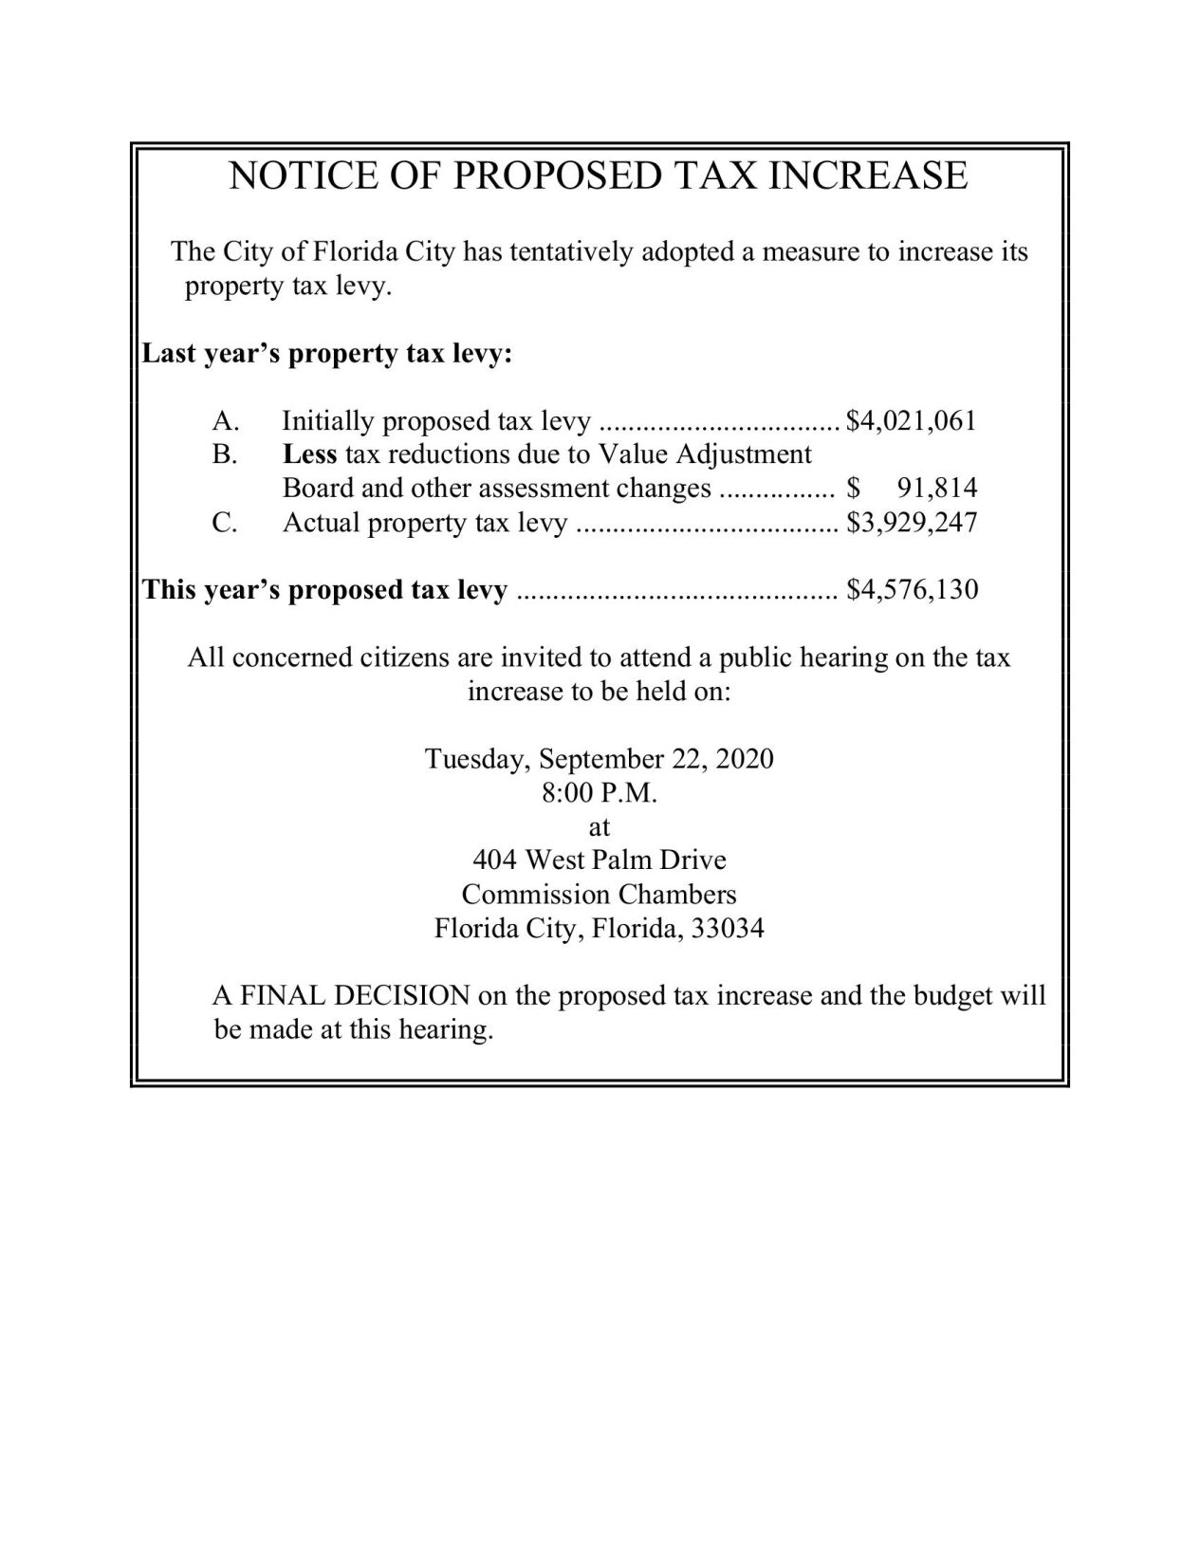 CITY OF FLORIDA CITY - NOTICE OF PROPOSED TAX INCREASE